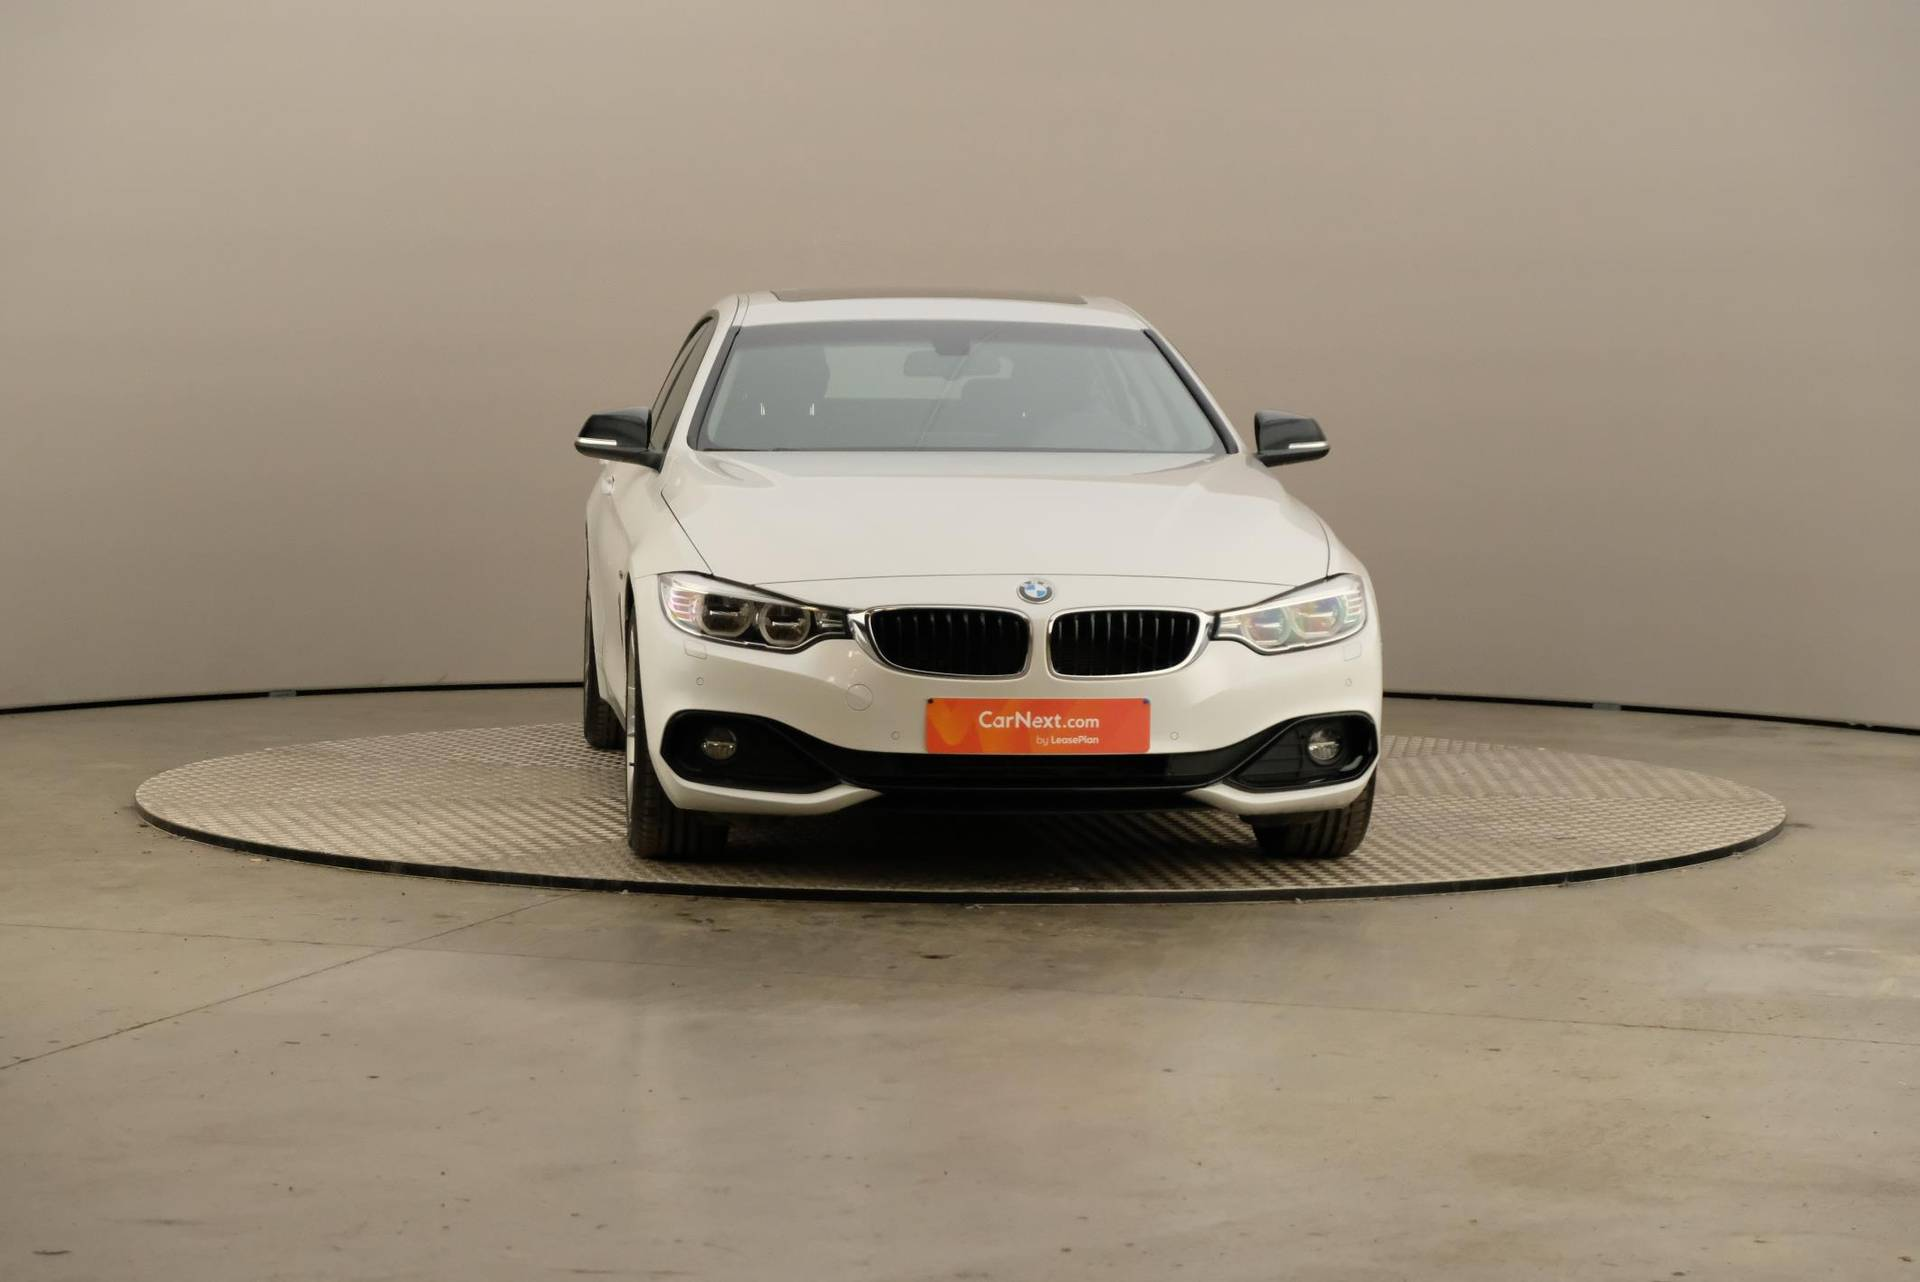 BMW 4 gran coupé 420 dA SPORT LINE LED GPS PROF PDC OPEN DAK/TO HARMAN KARDON, 360-image31